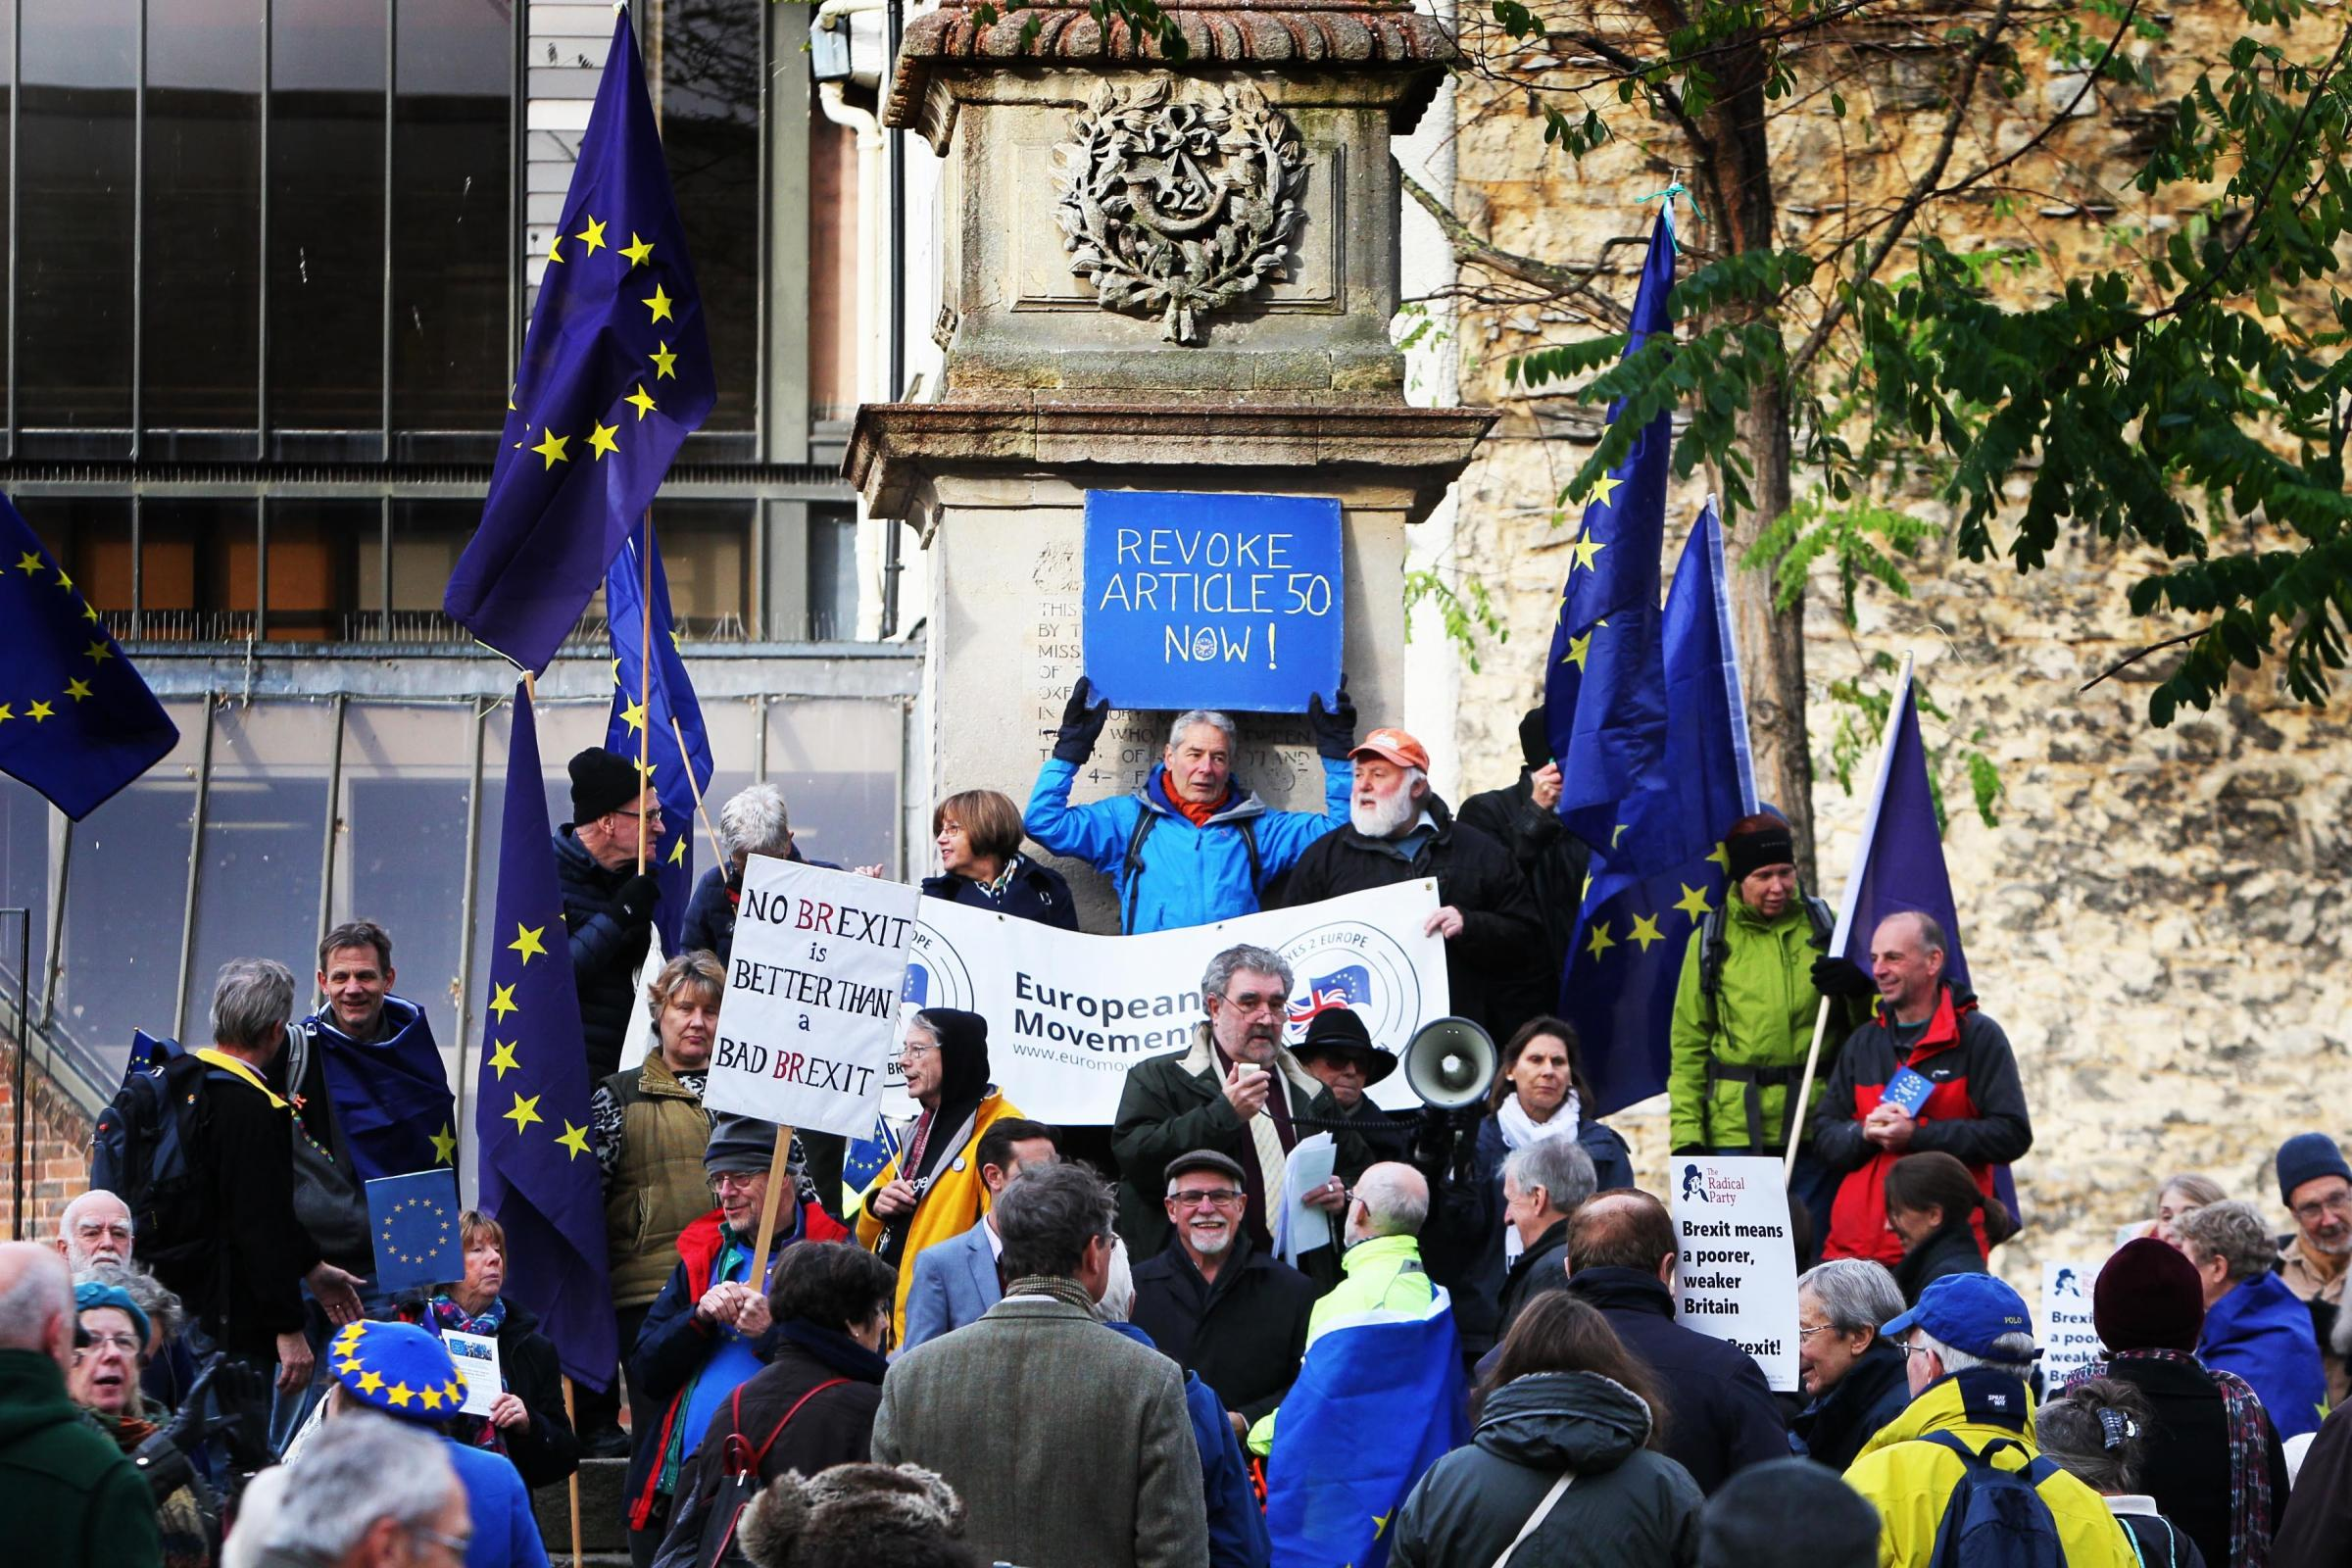 The Brexit rally in Bonn Square.